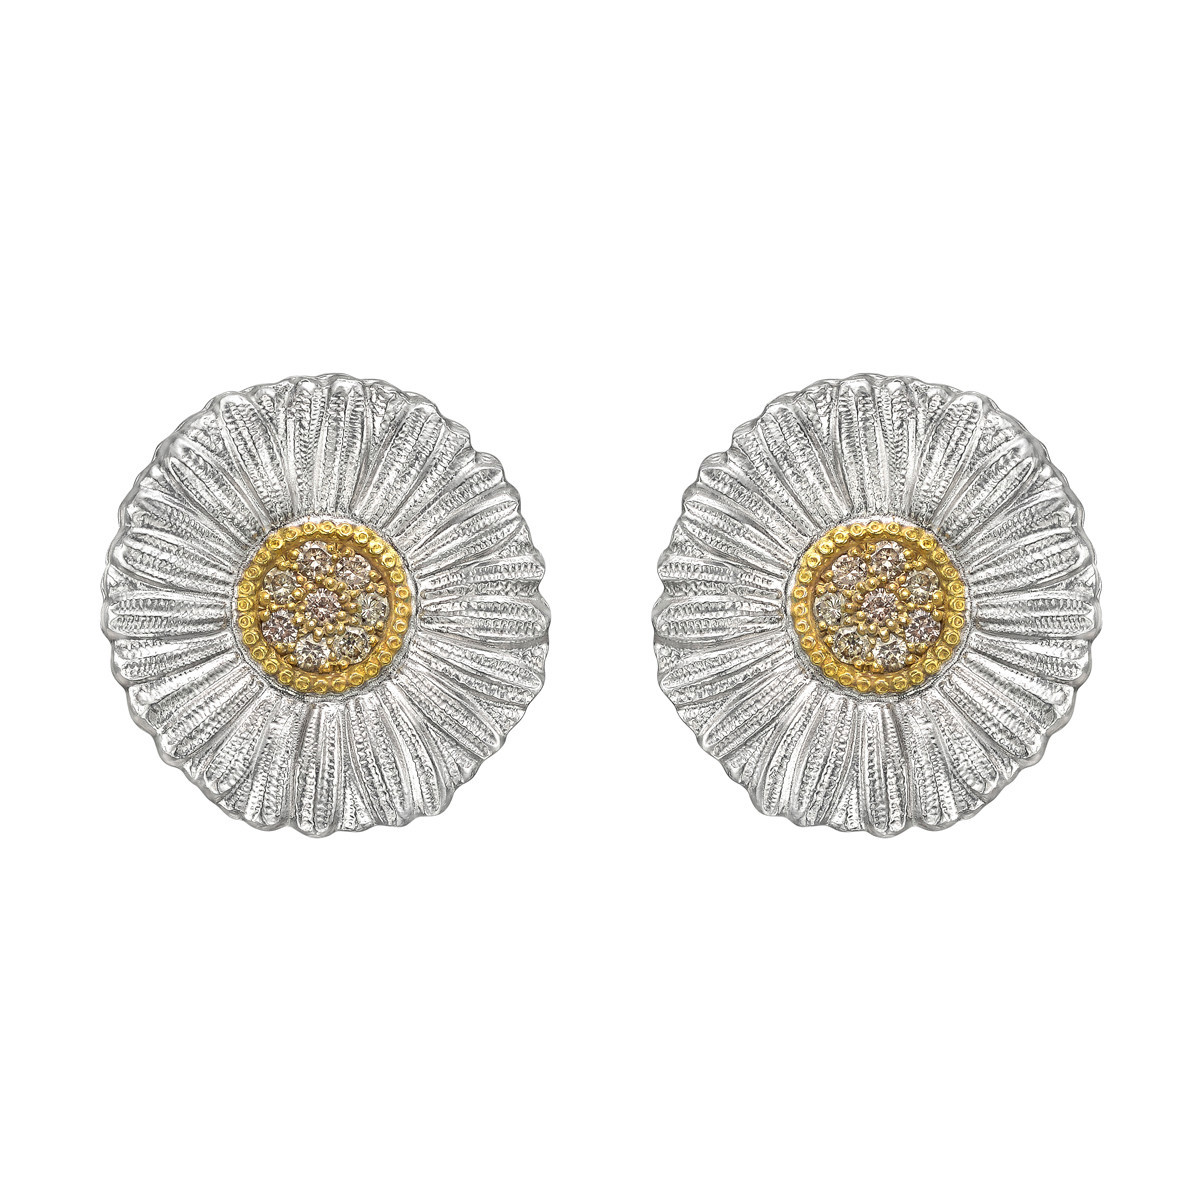 Medium Silver, Gold & Diamond Daisy Earrings